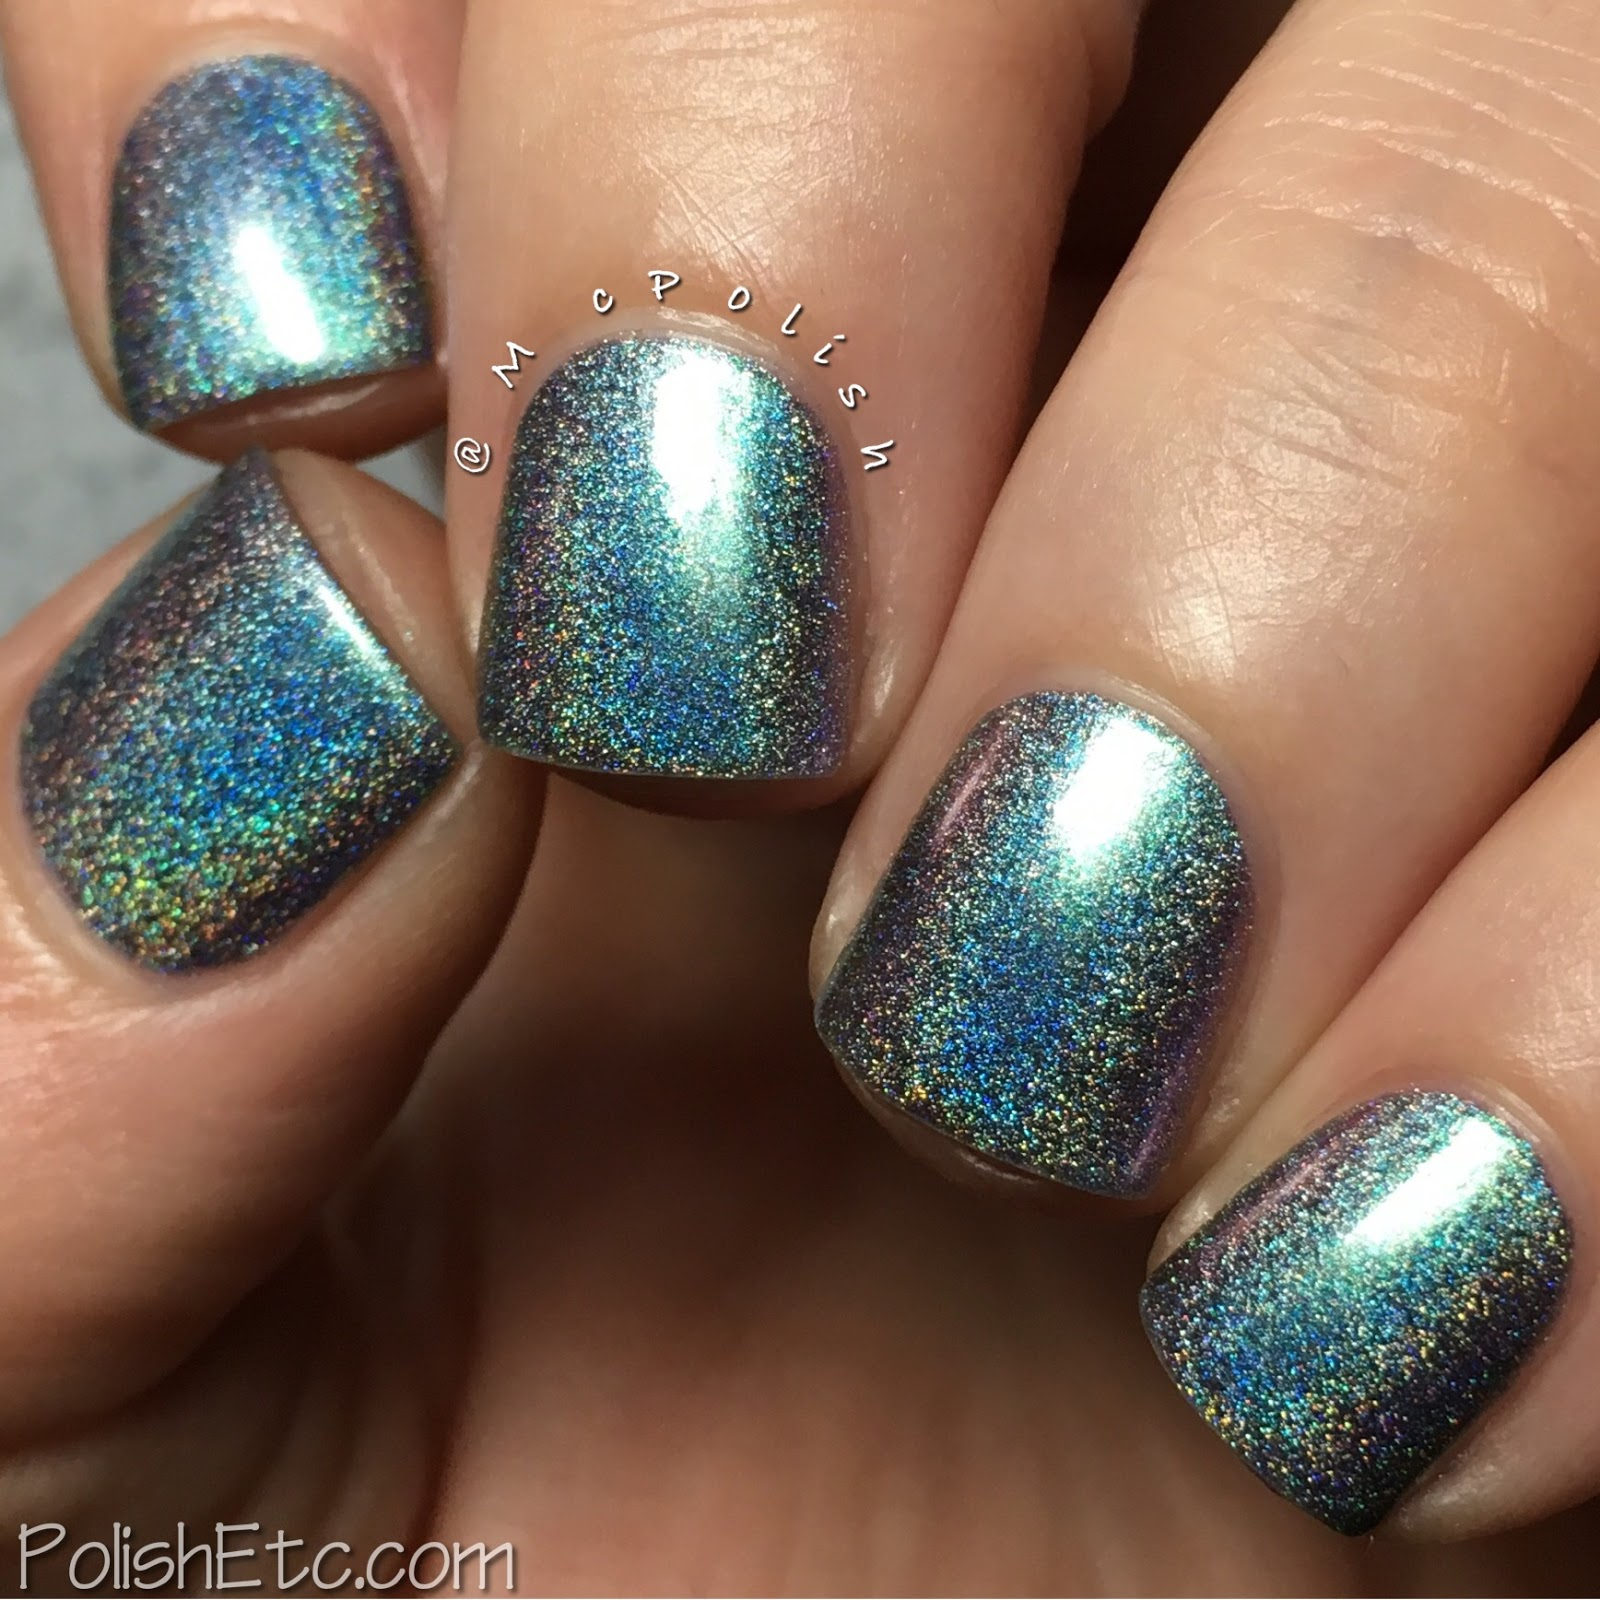 Great Lakes Lacquer - Polishing Poetic Collection - McPolish - Like Air, I'll Rise